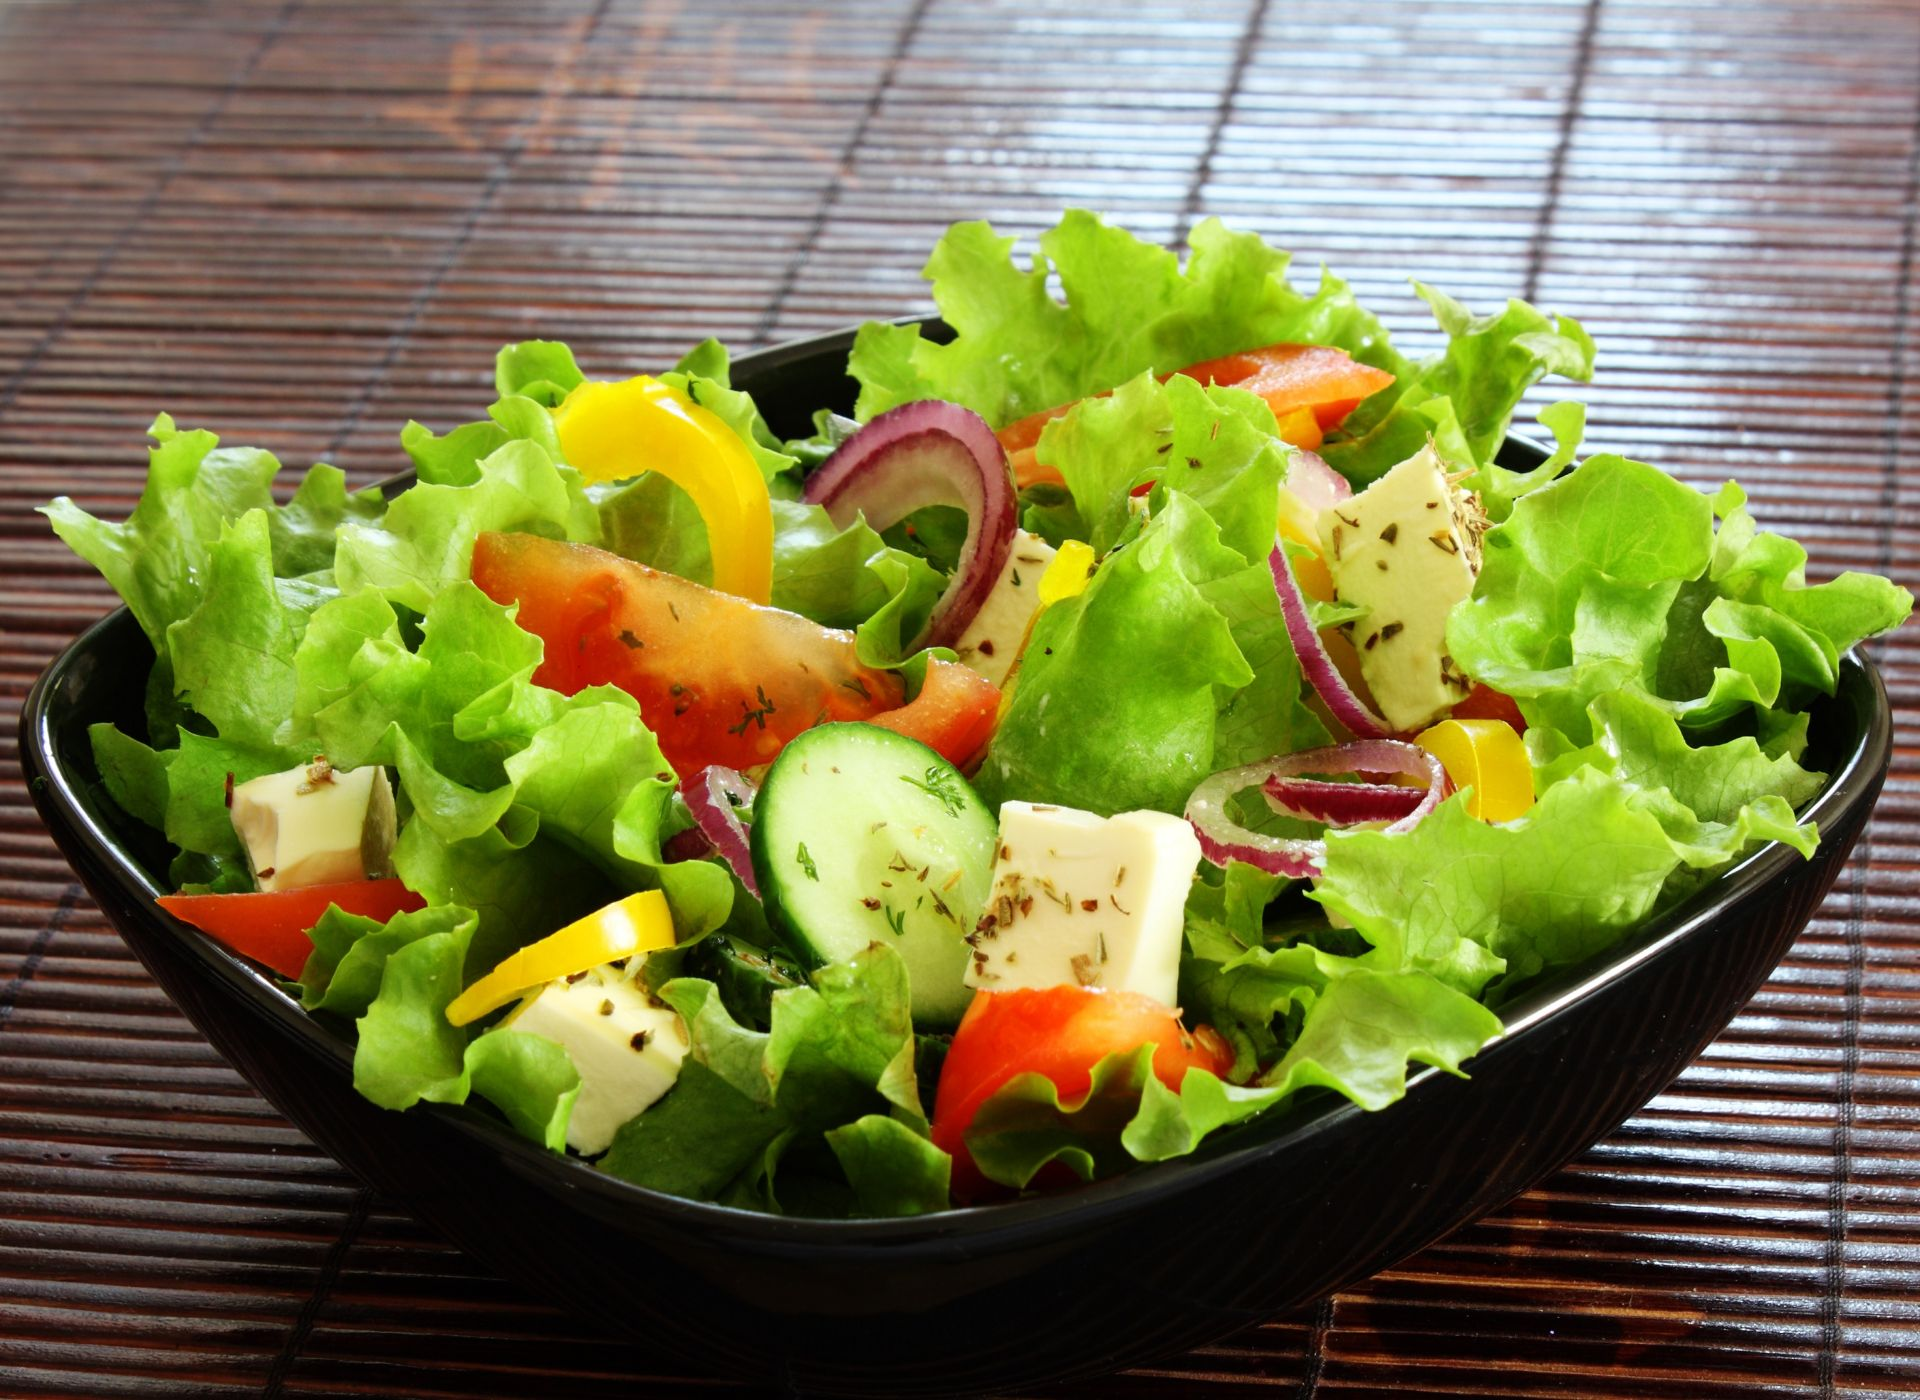 Garden salad with tomatoes, cucumbers, red onion and cheese in a bowl